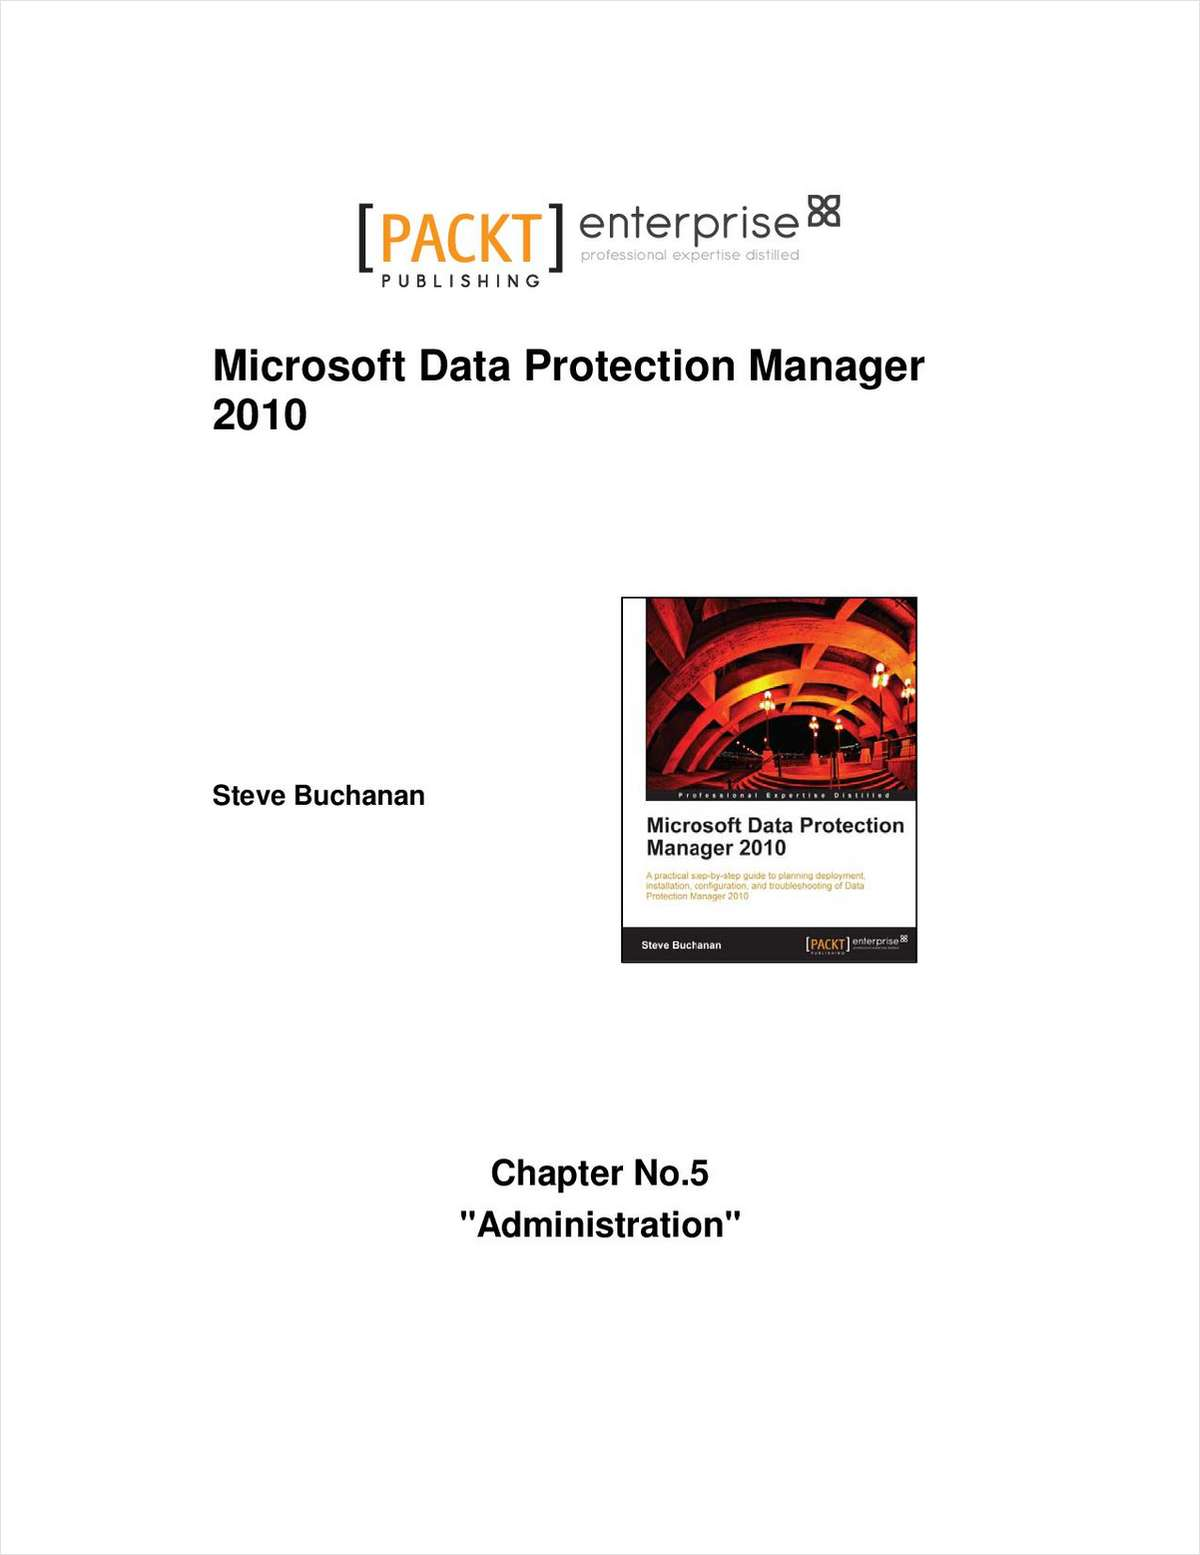 Microsoft Data Protection Manager 2010 Administration - Free Chapter from Microsoft Data Protection Manager 2010